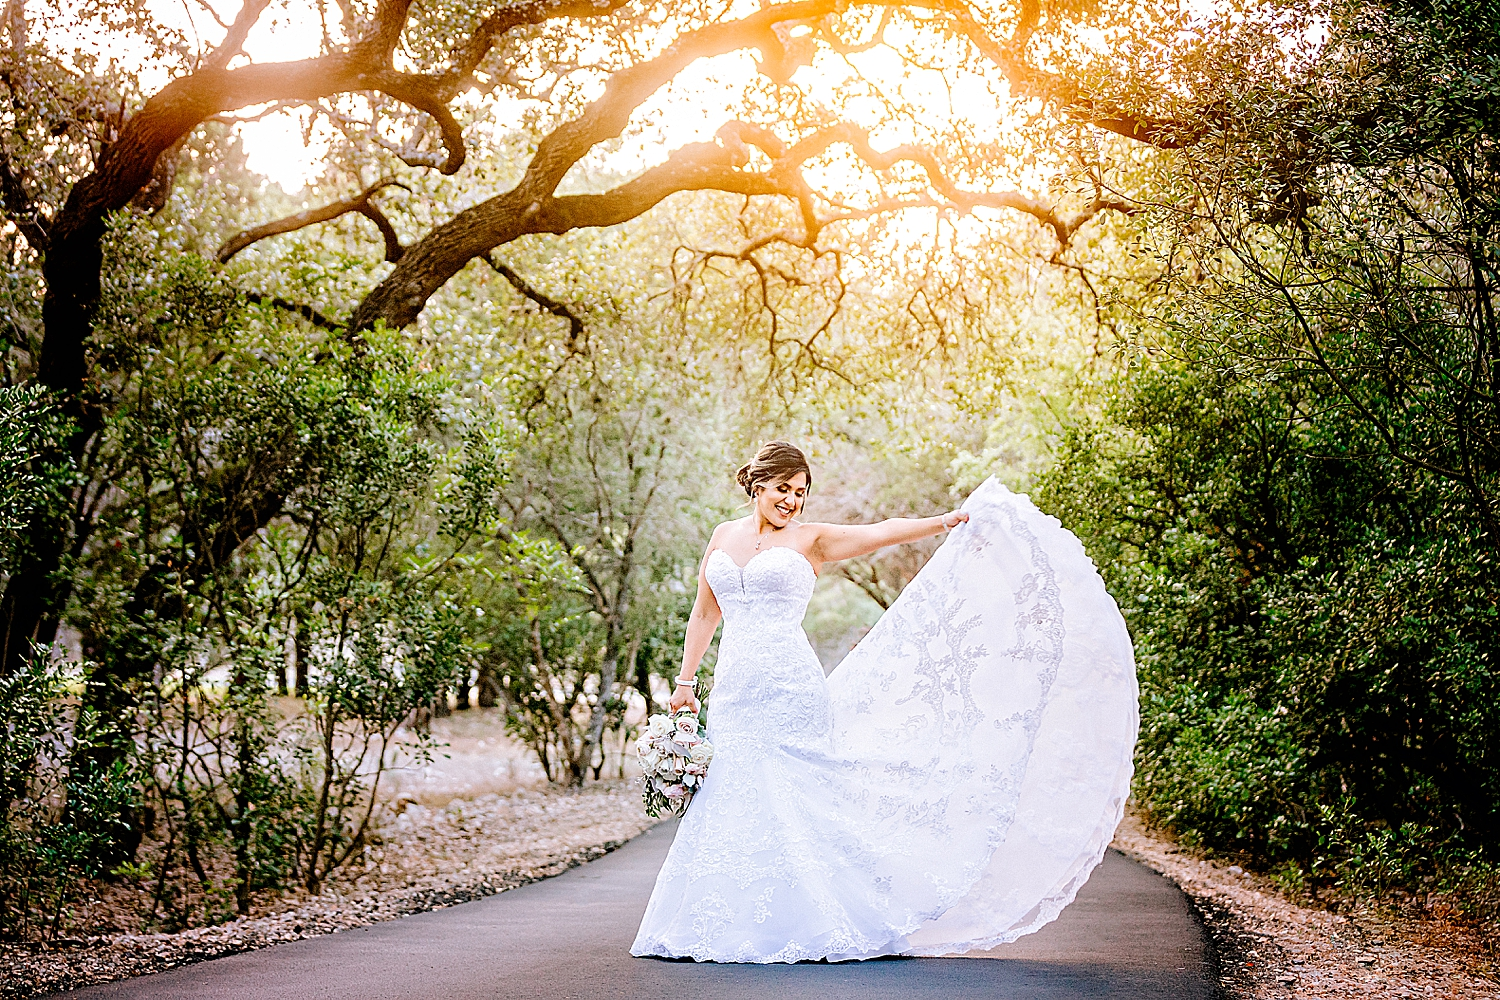 Carly-Barton-Photography-Bridal-Photos-Chadelier-of-Gruene-New-Braunfels-Wedding-Photographer_0020.jpg